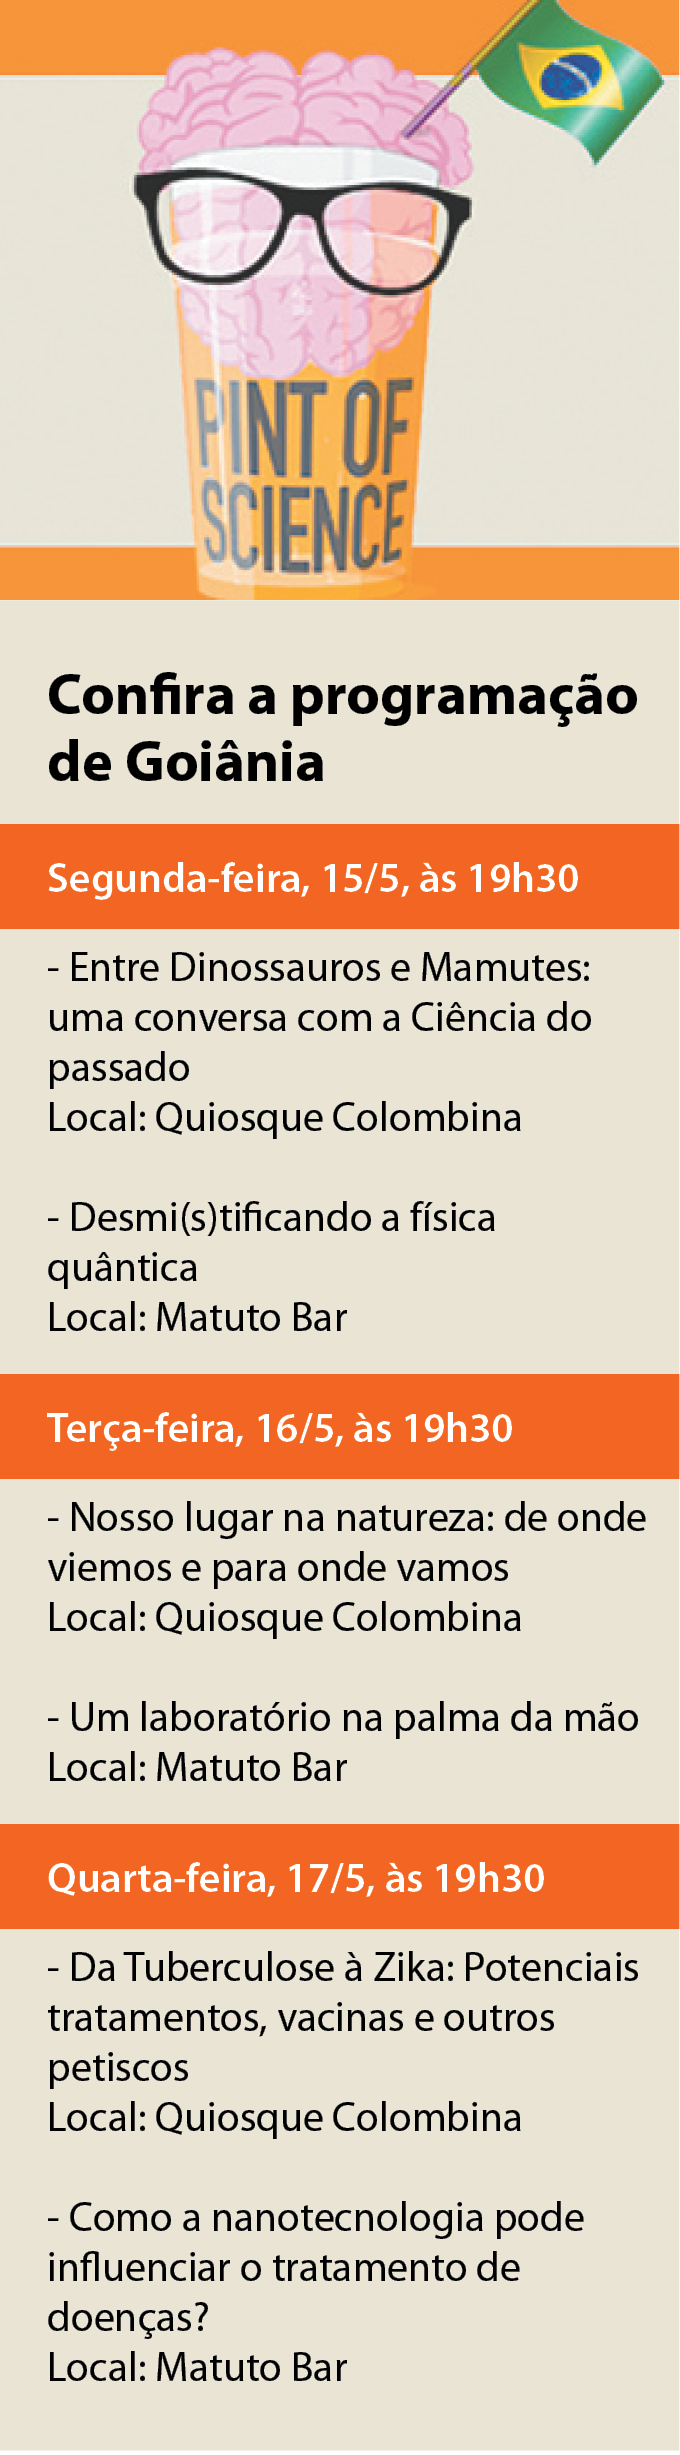 pint of science goiânia 2017